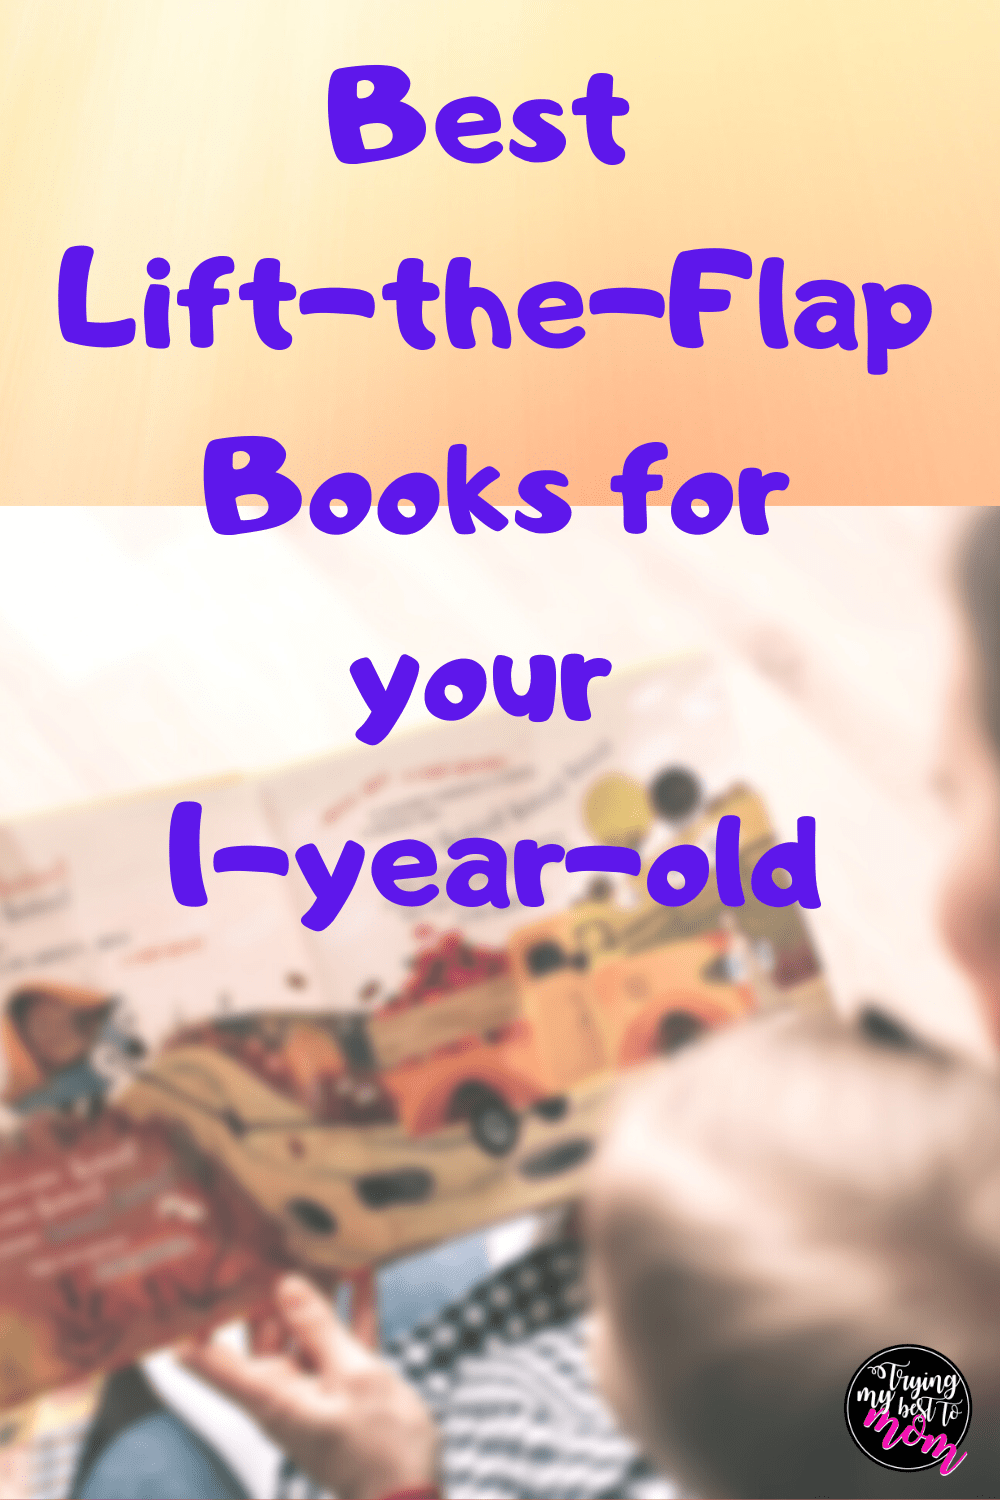 Our Favorite Lift-the-Flap Books